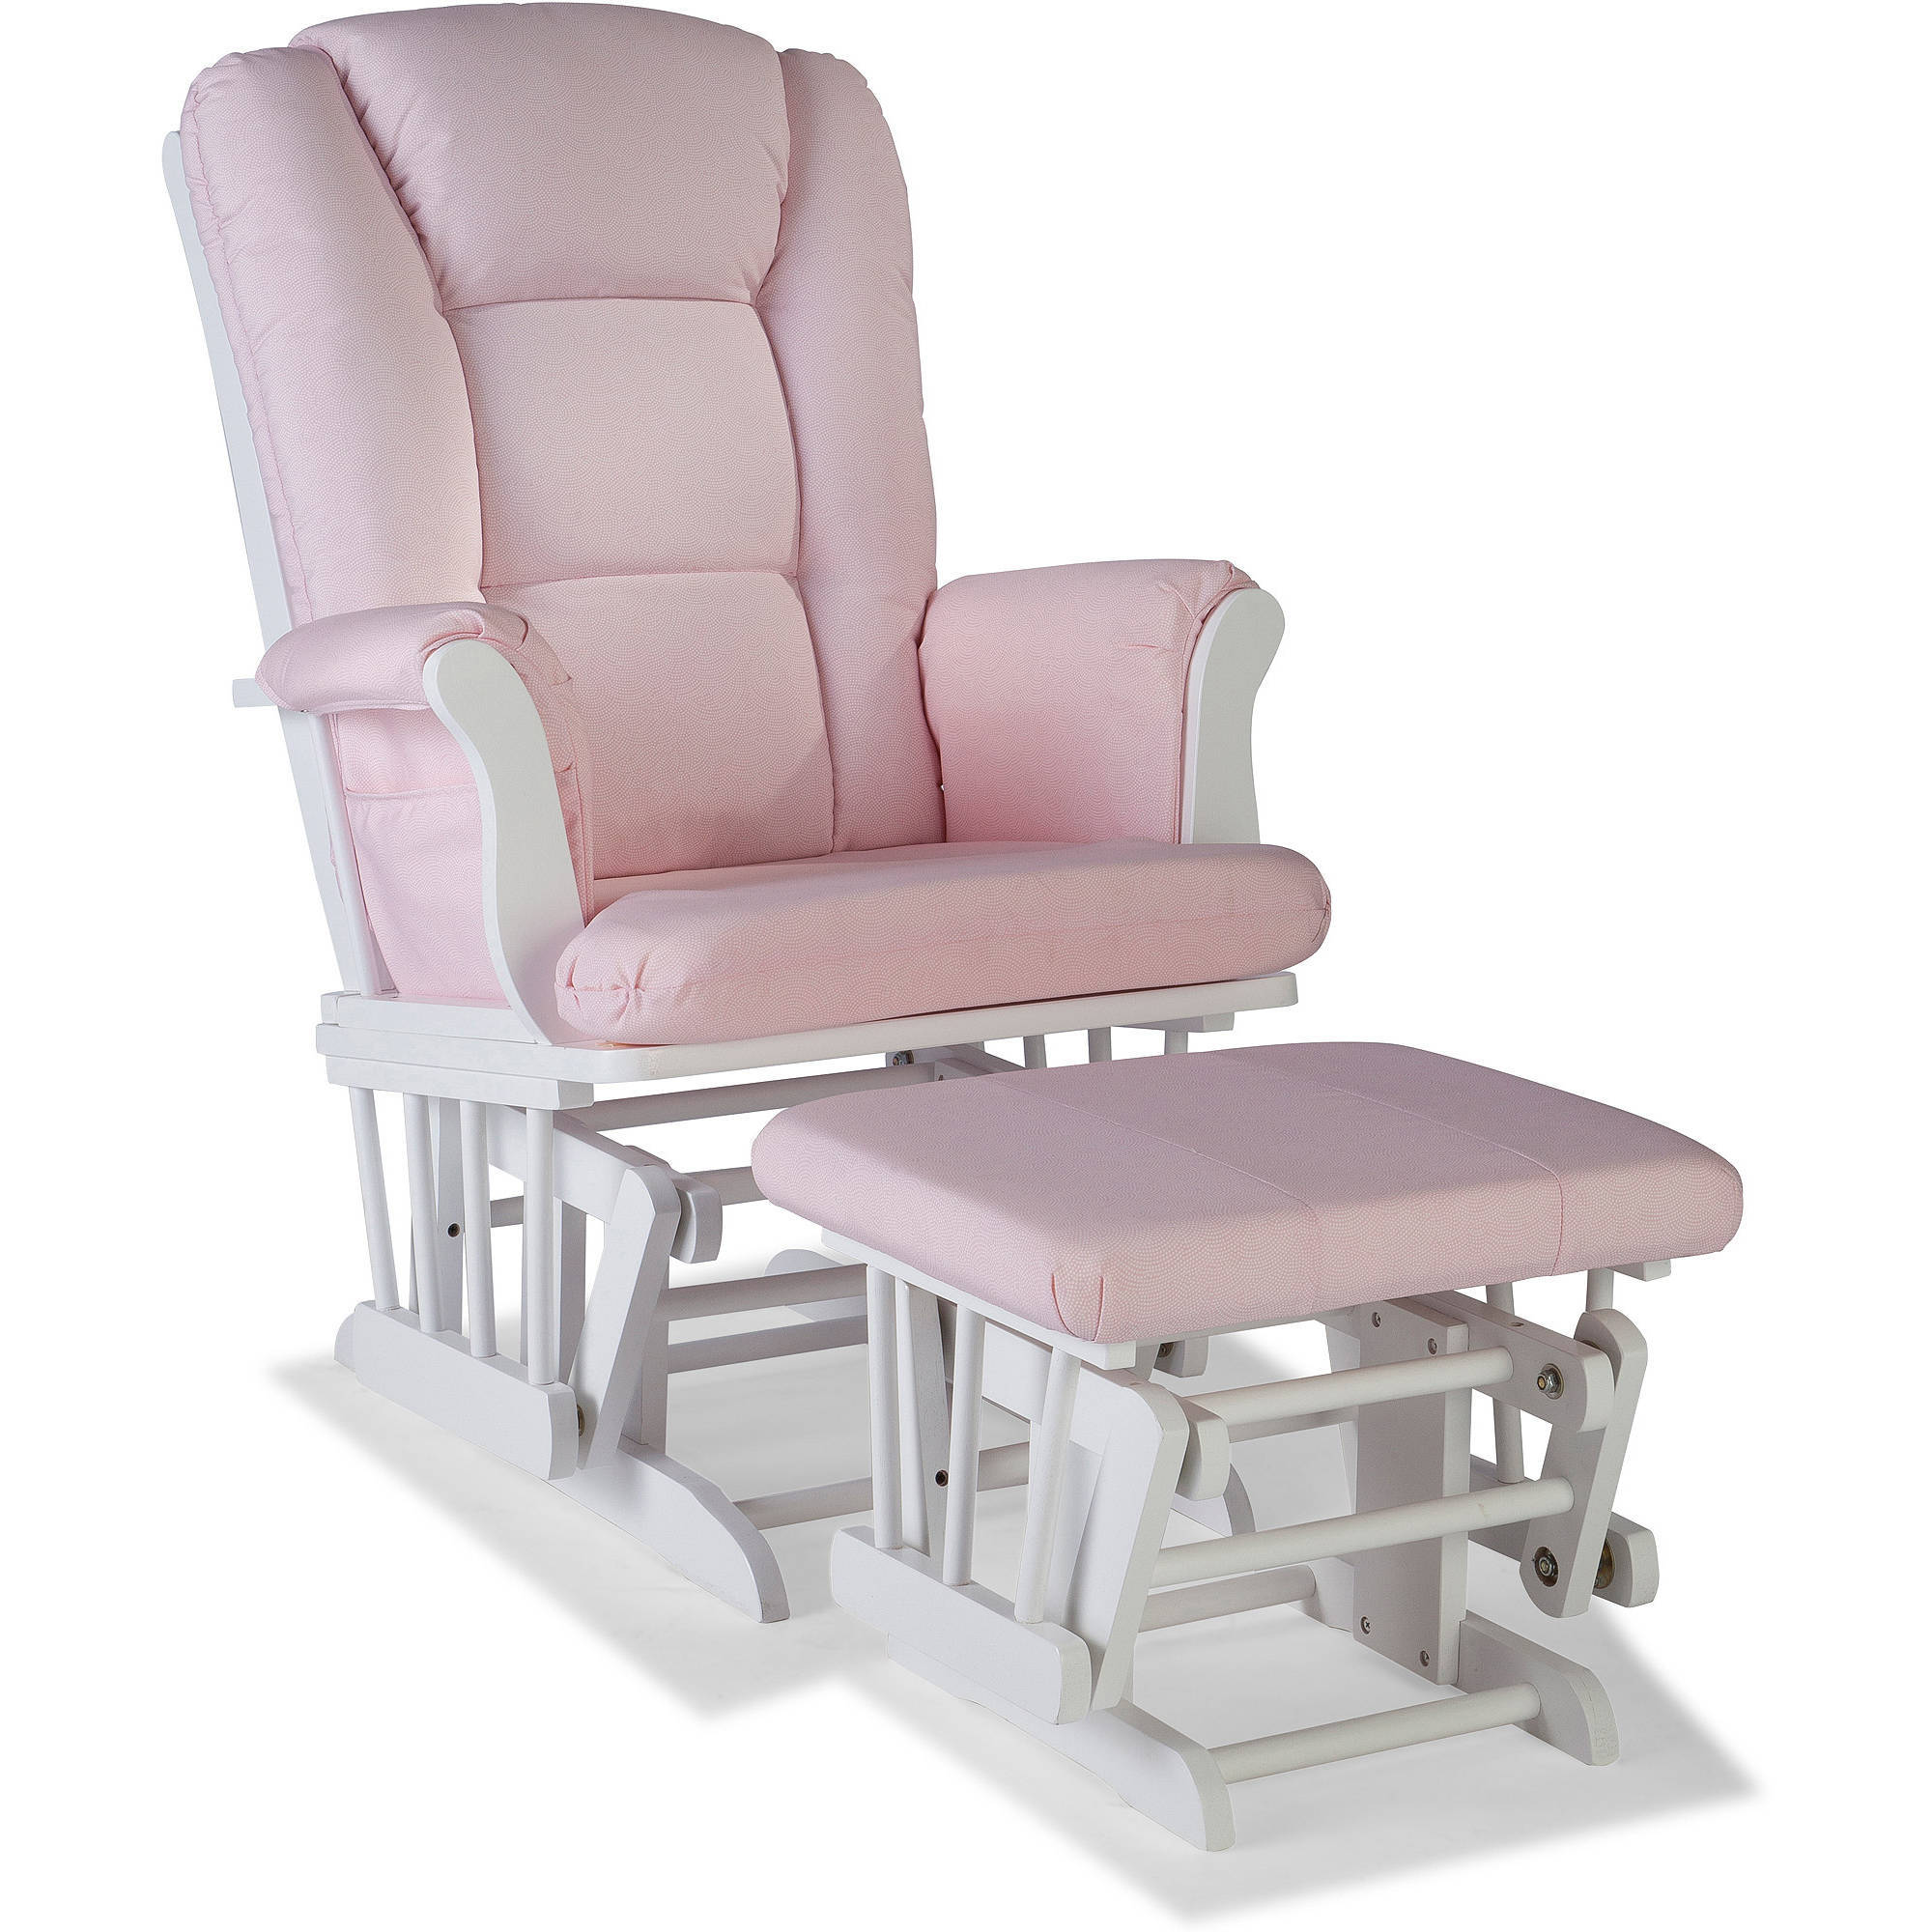 Storkcraft Swirl Tuscany Glider and Ottoman incl Lumbar Pillow, Pink Blush Cushions, Choose Your Finish